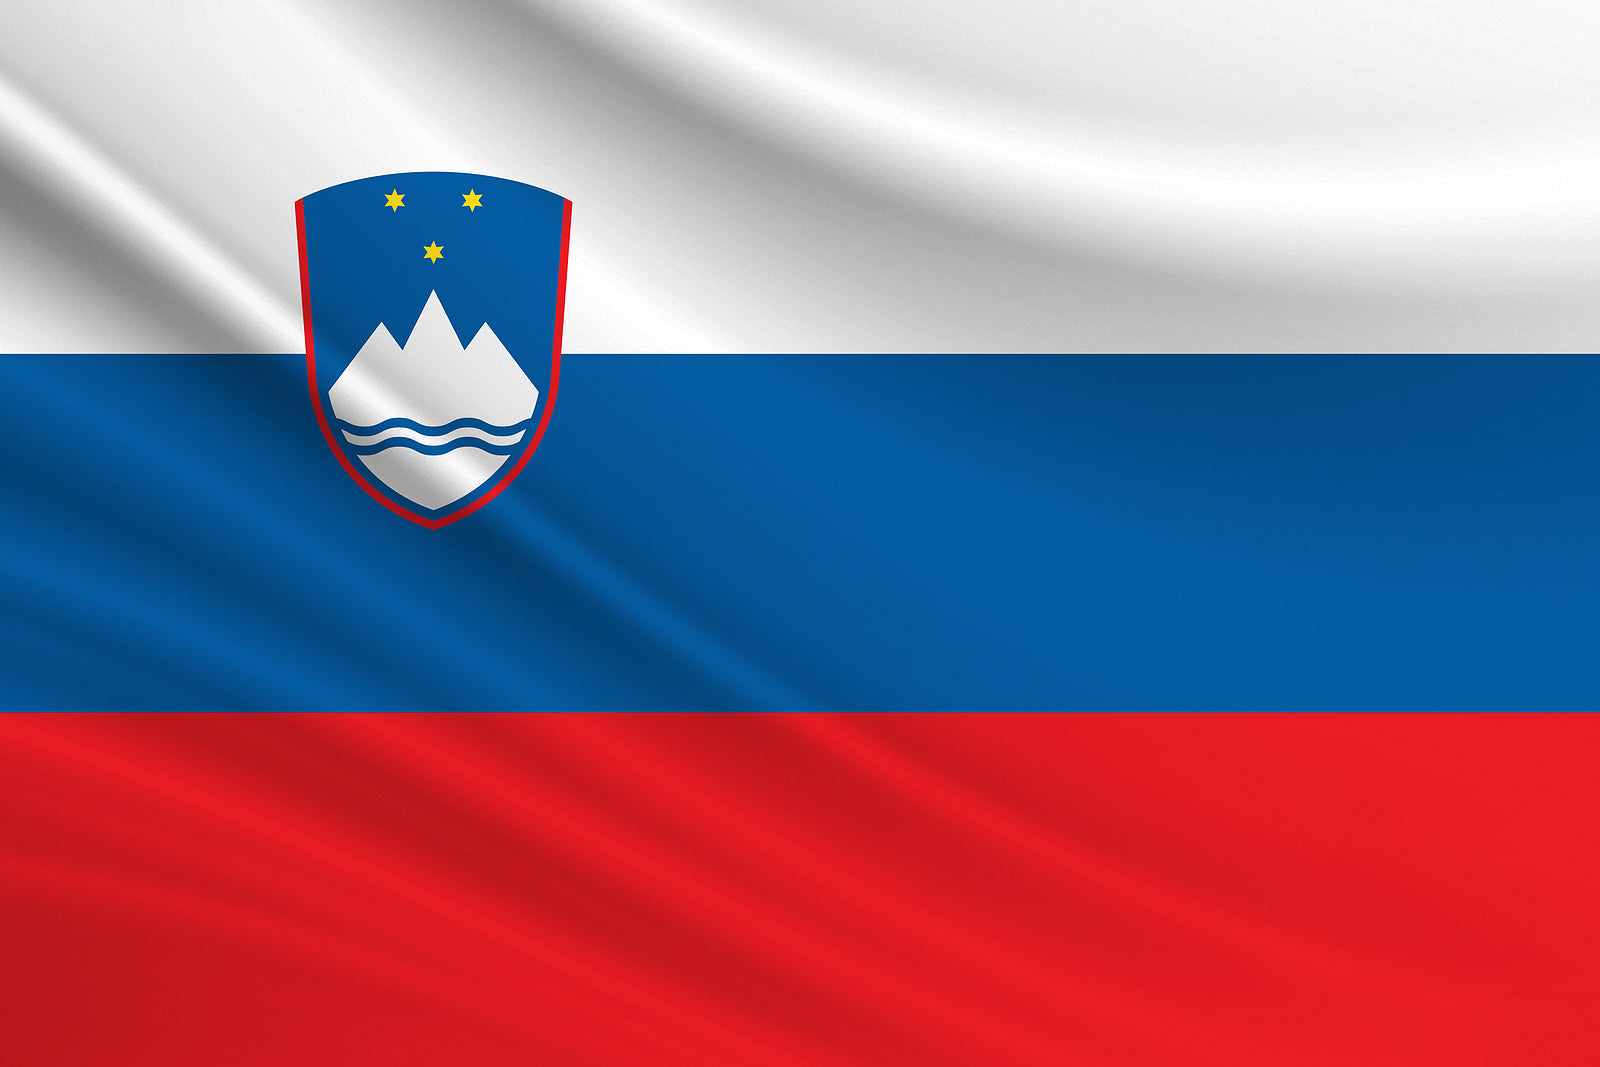 [Slovenia] Amended act on employment of foreigners passed